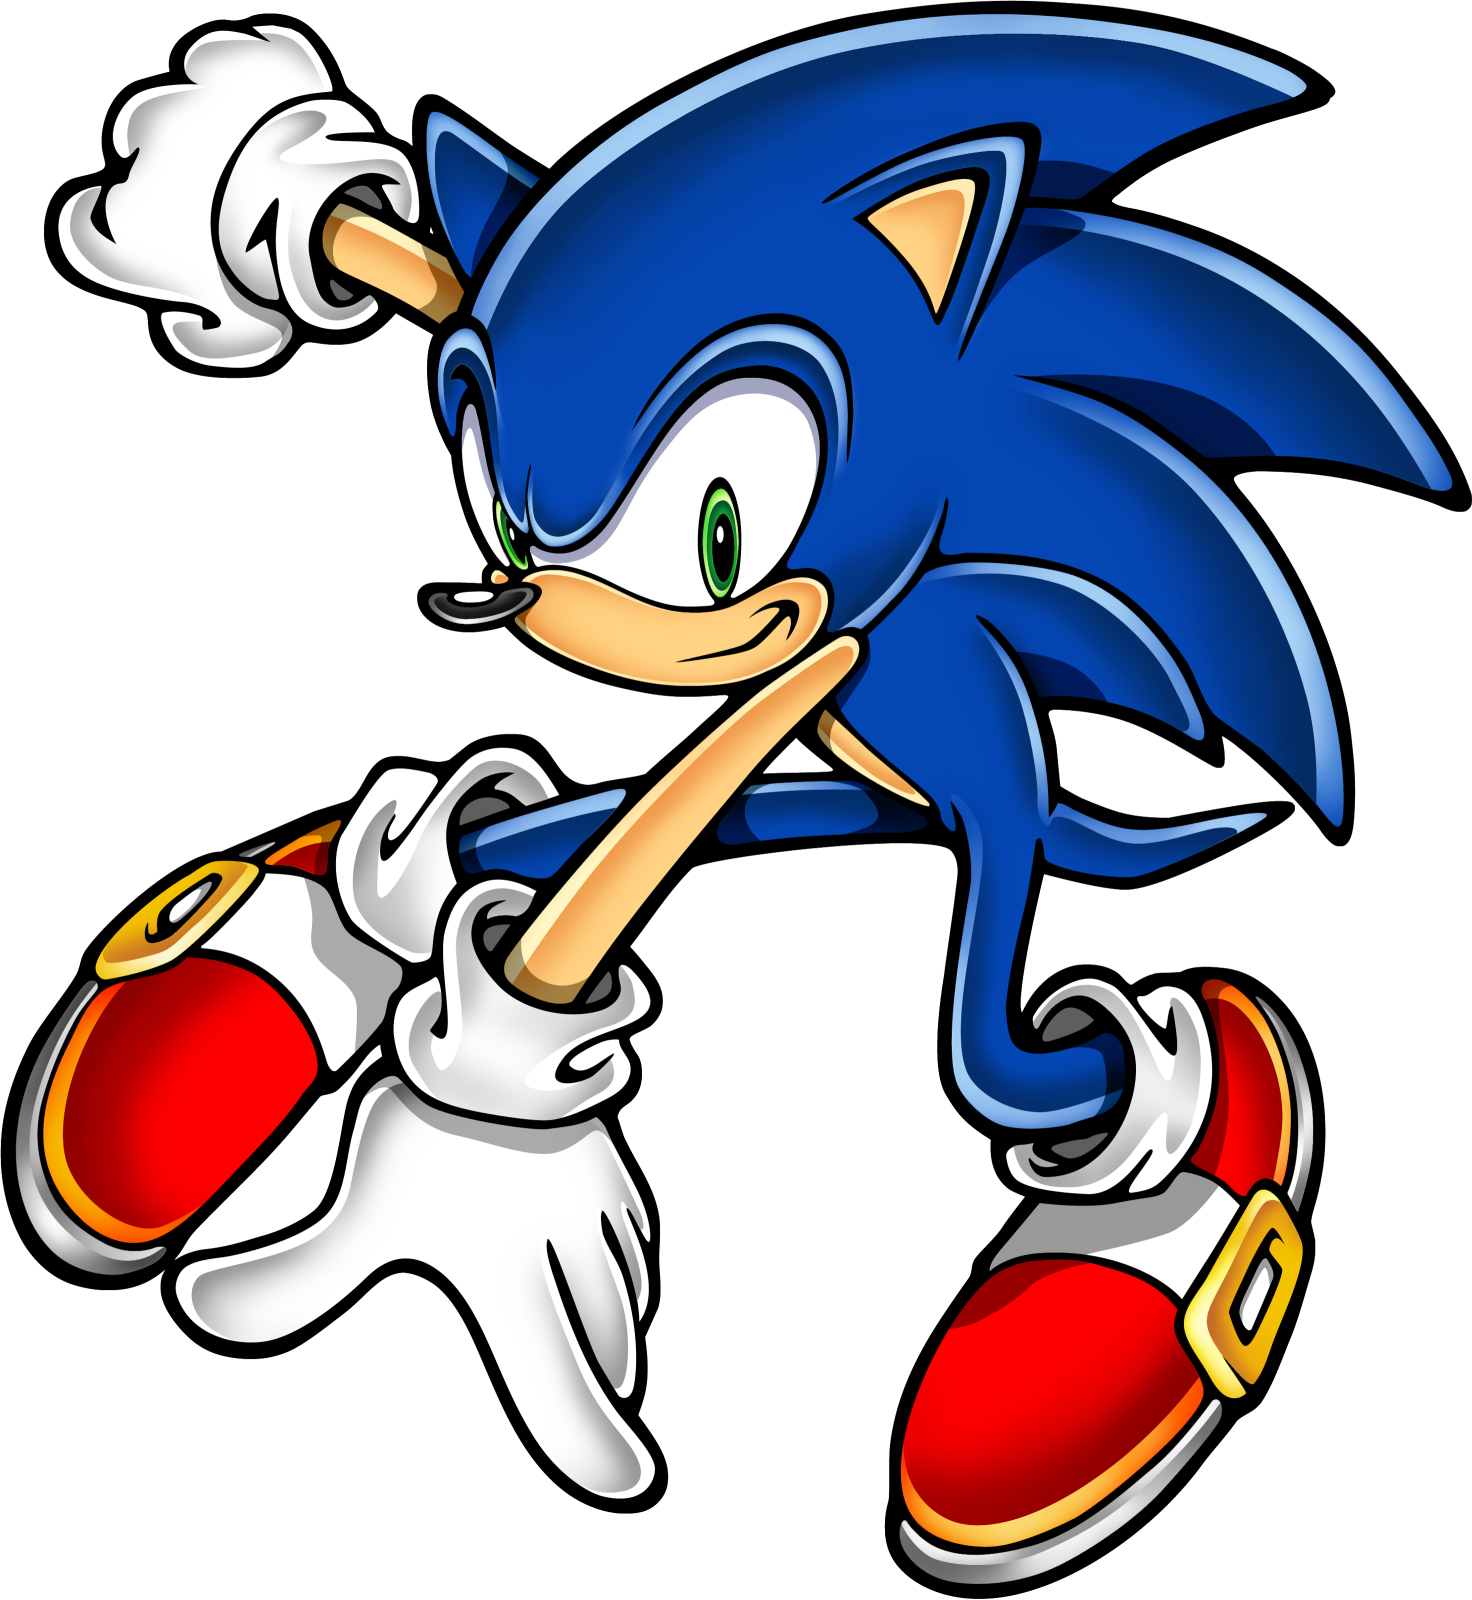 Sonic The Hedgehog clipart Hedgehog Hedgehog the on Sonic